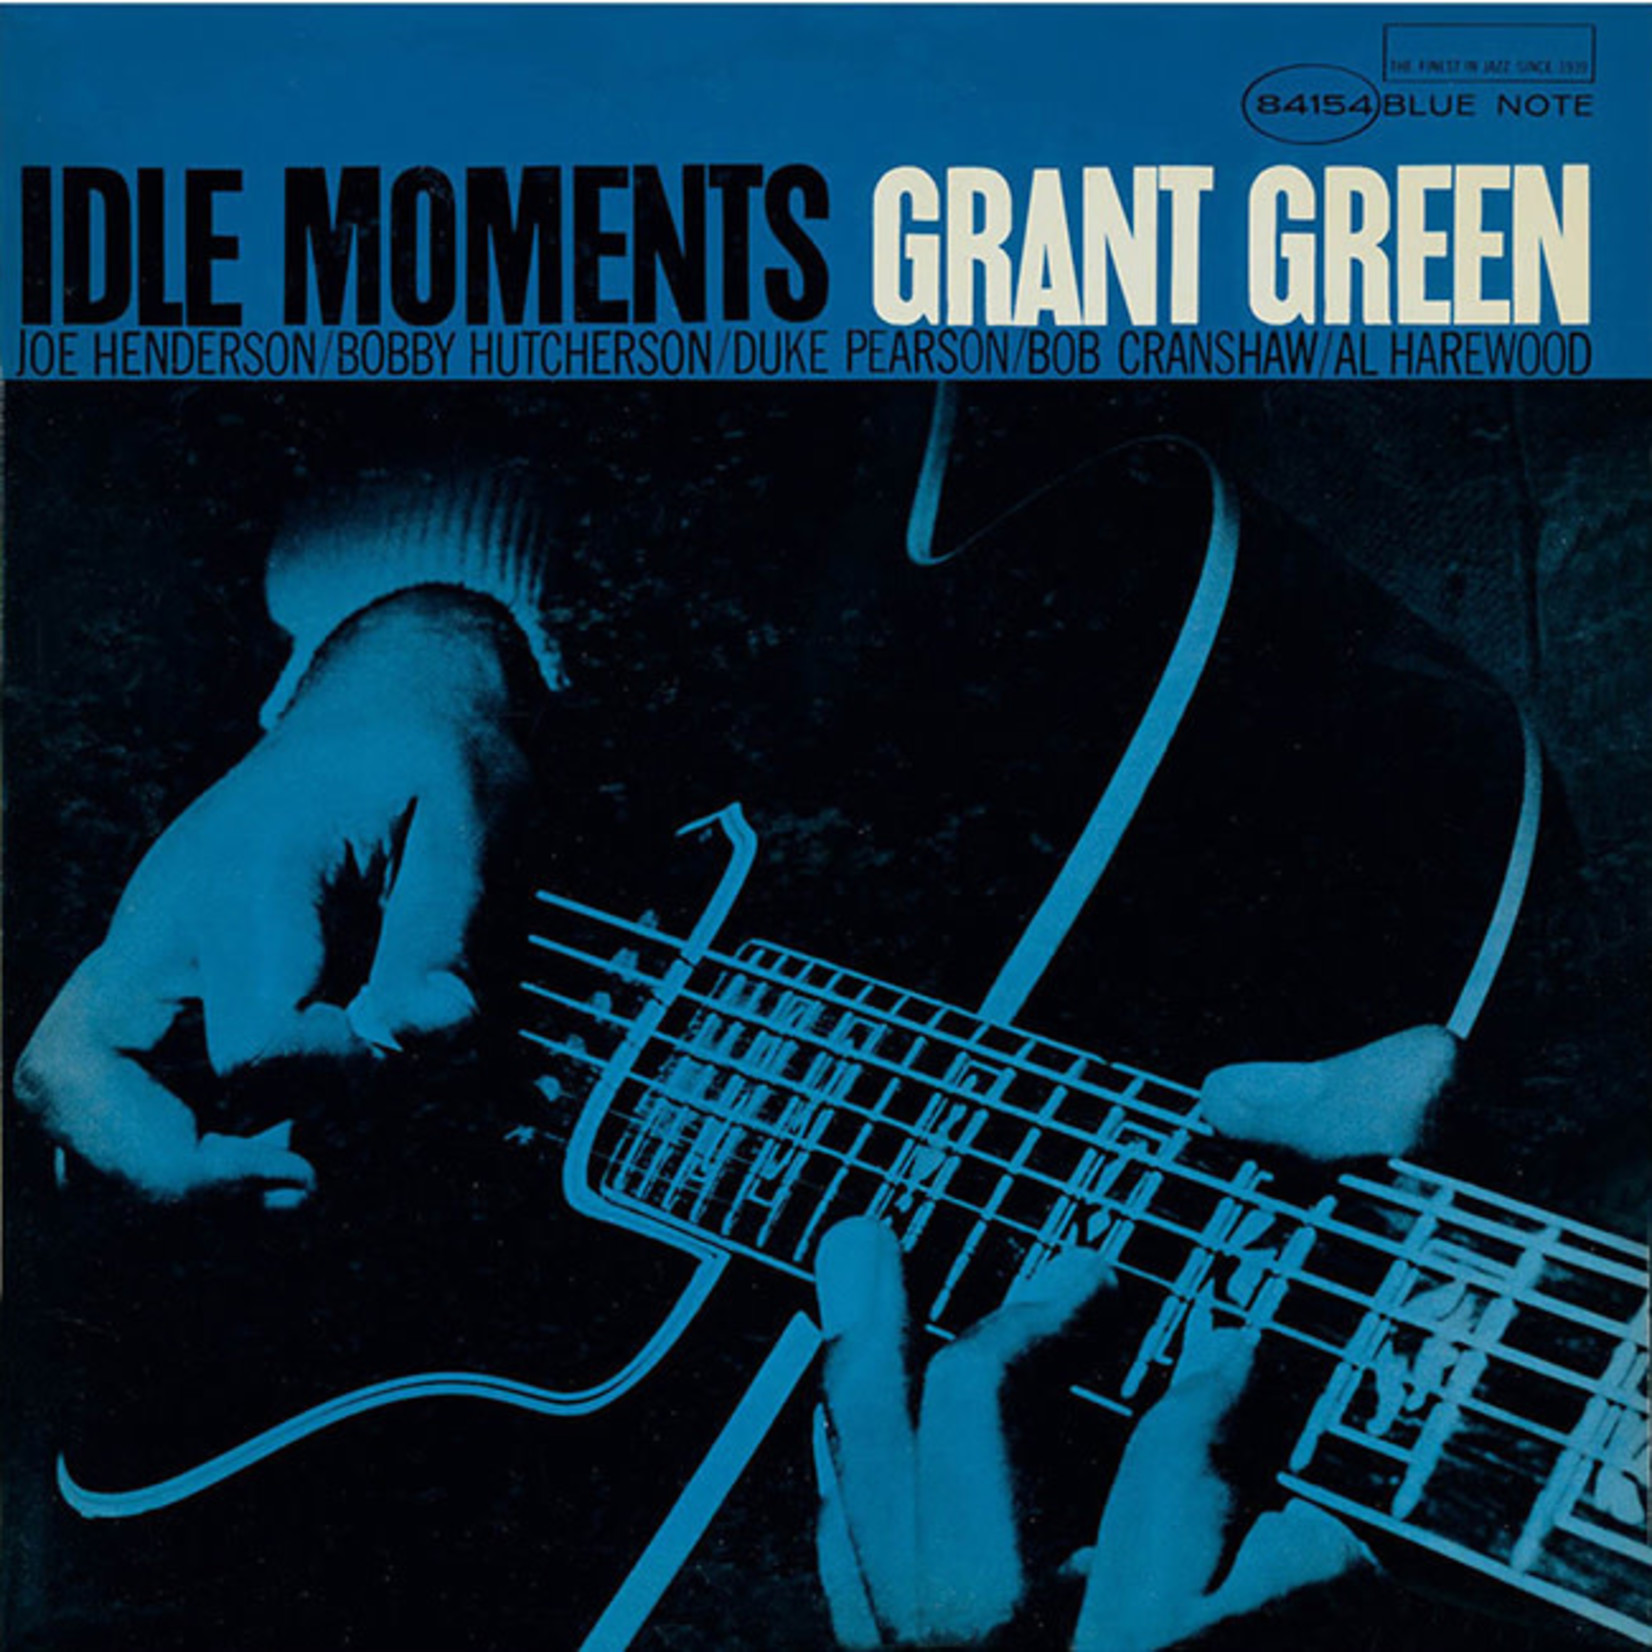 [New] Green, Grant: Idle Moments